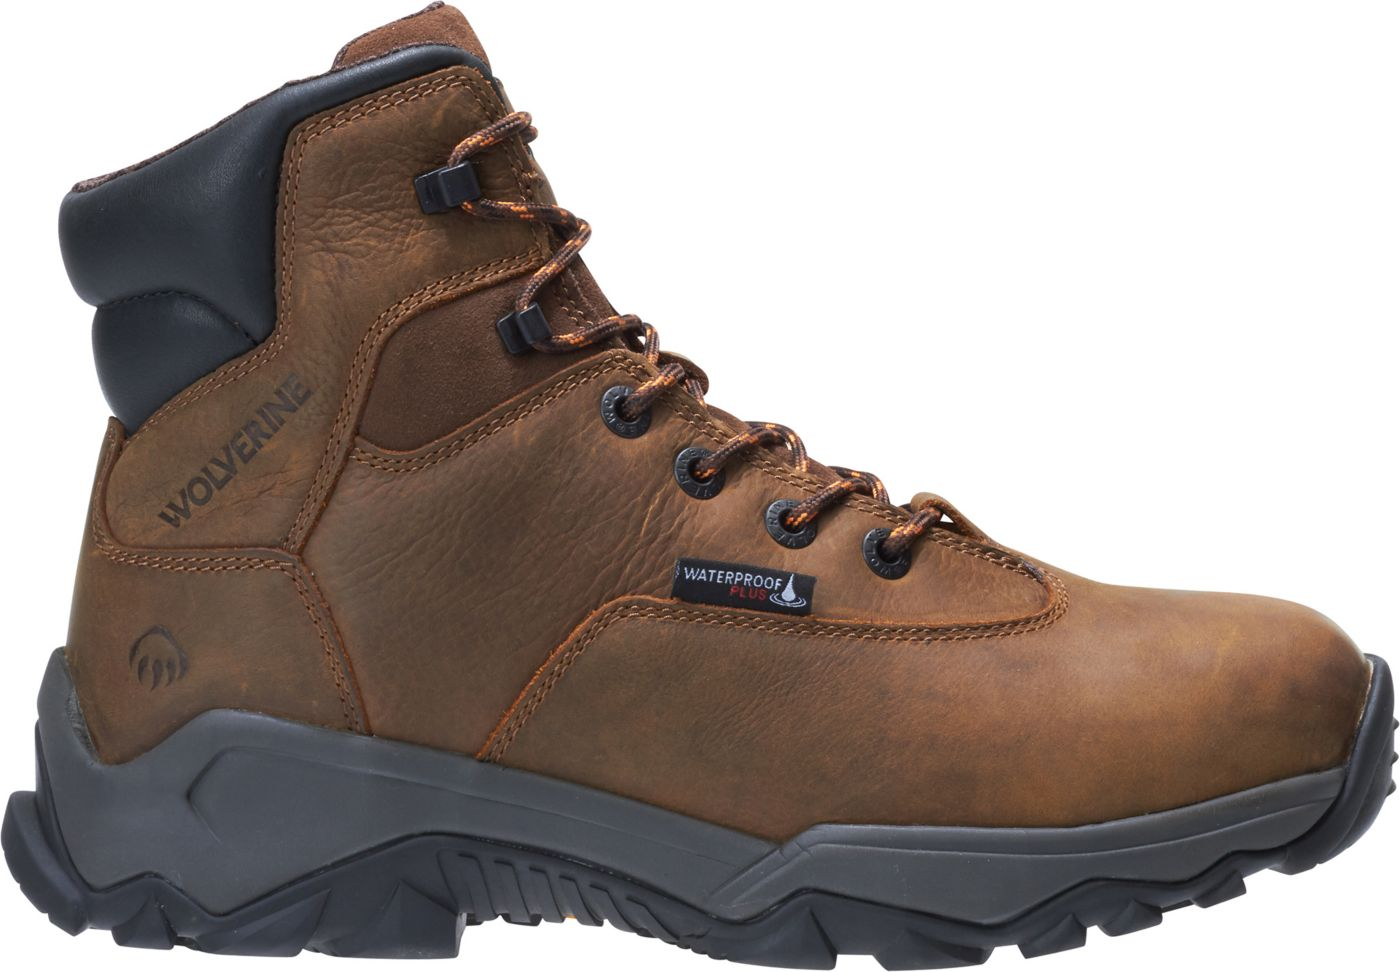 Wolverine Men's Glacier II 6'' 400g Waterproof Composite Toe Work Boots